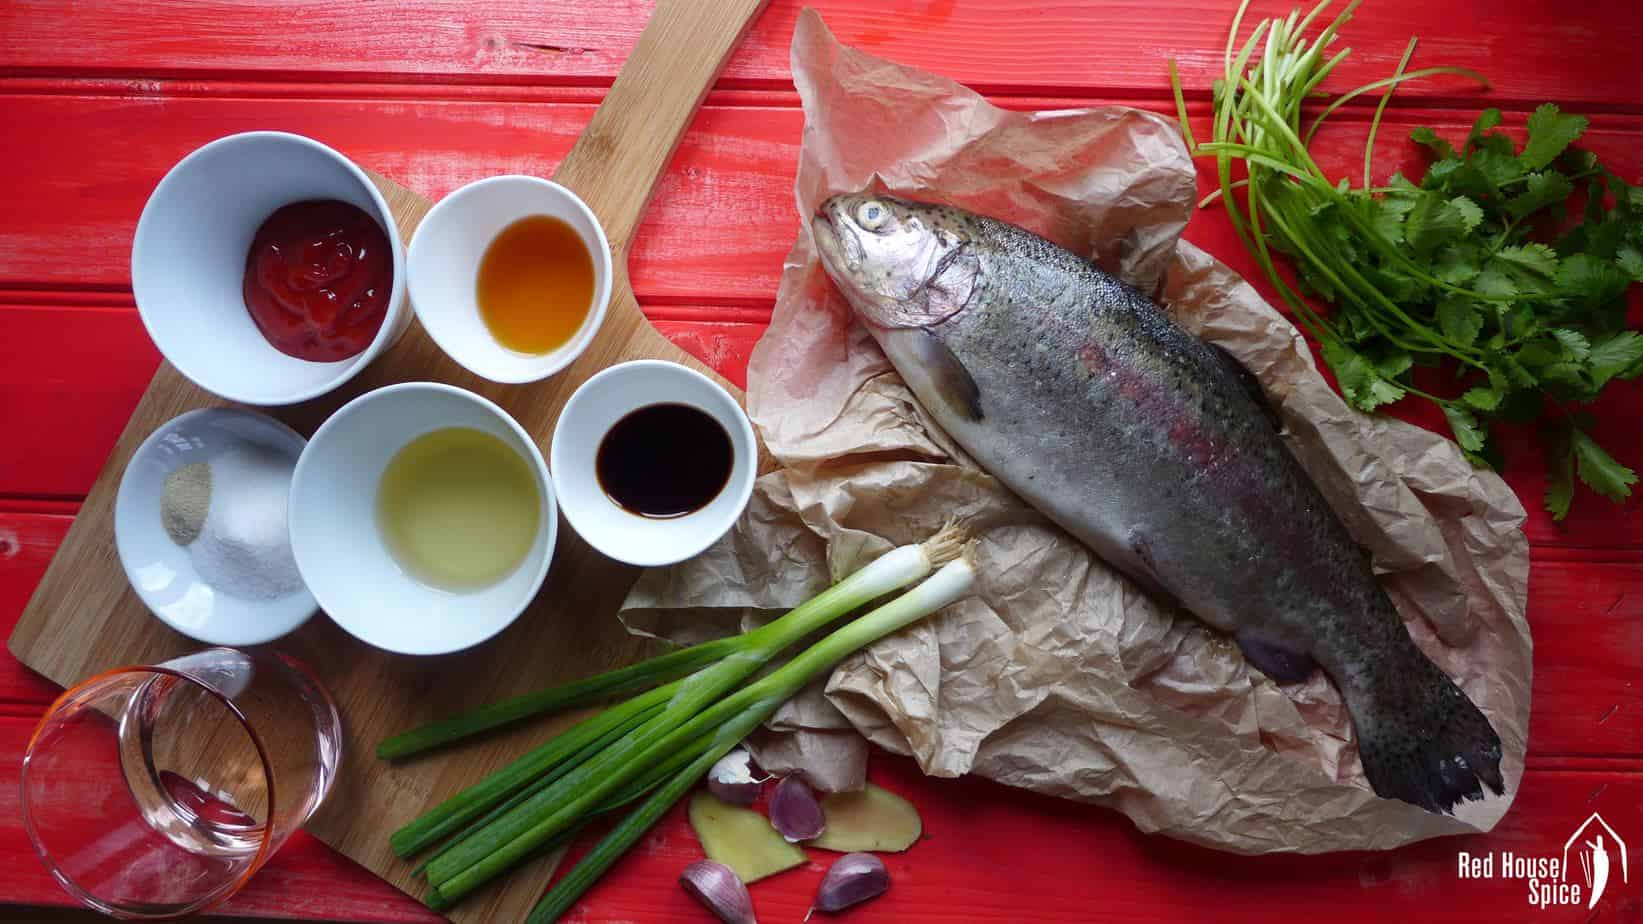 Ingredients for making Chinese sweet & sour fish